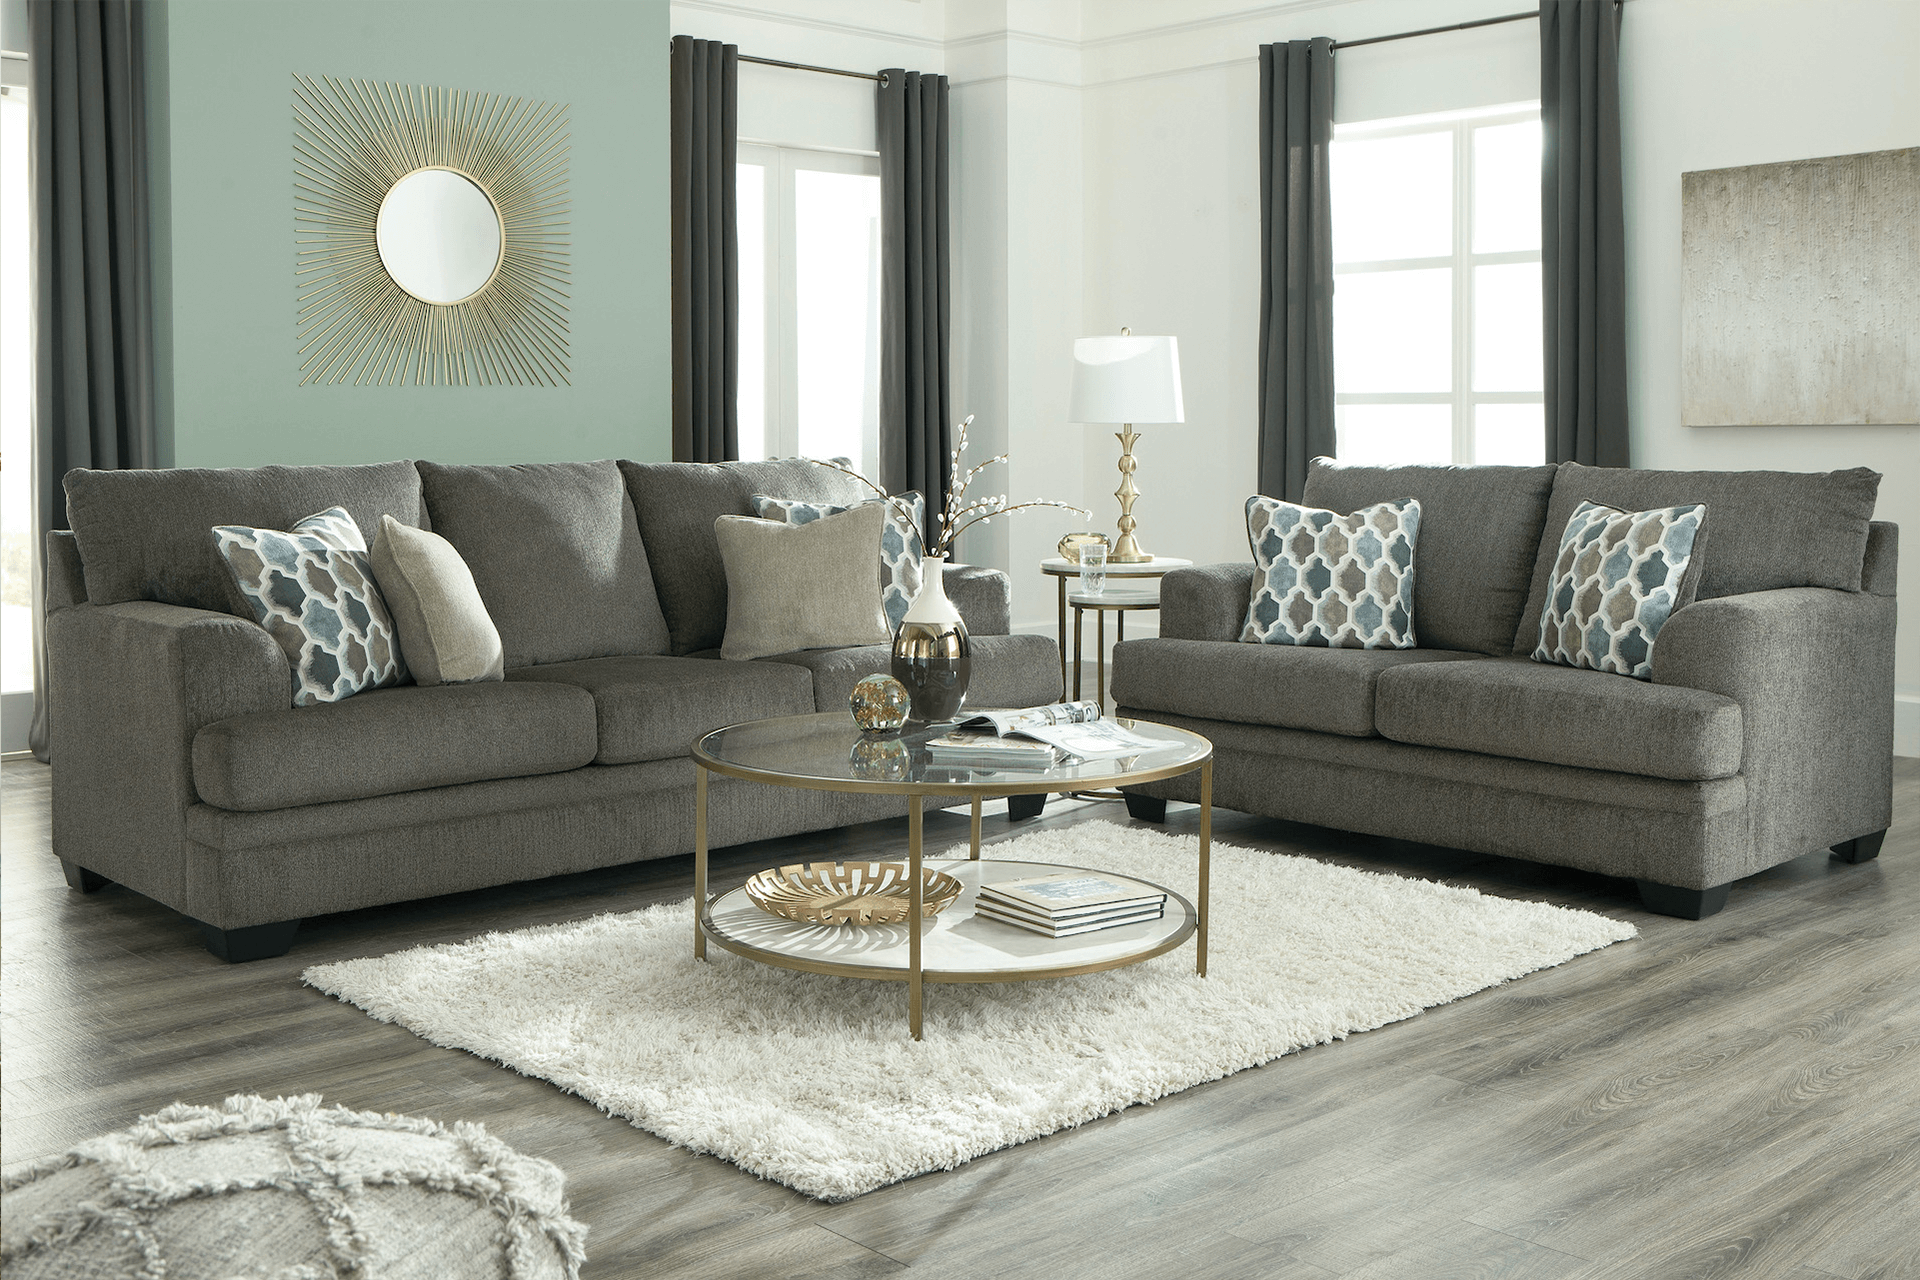 Atlantic_Furniture-Sofa_Sets-77204_T294_hi-res